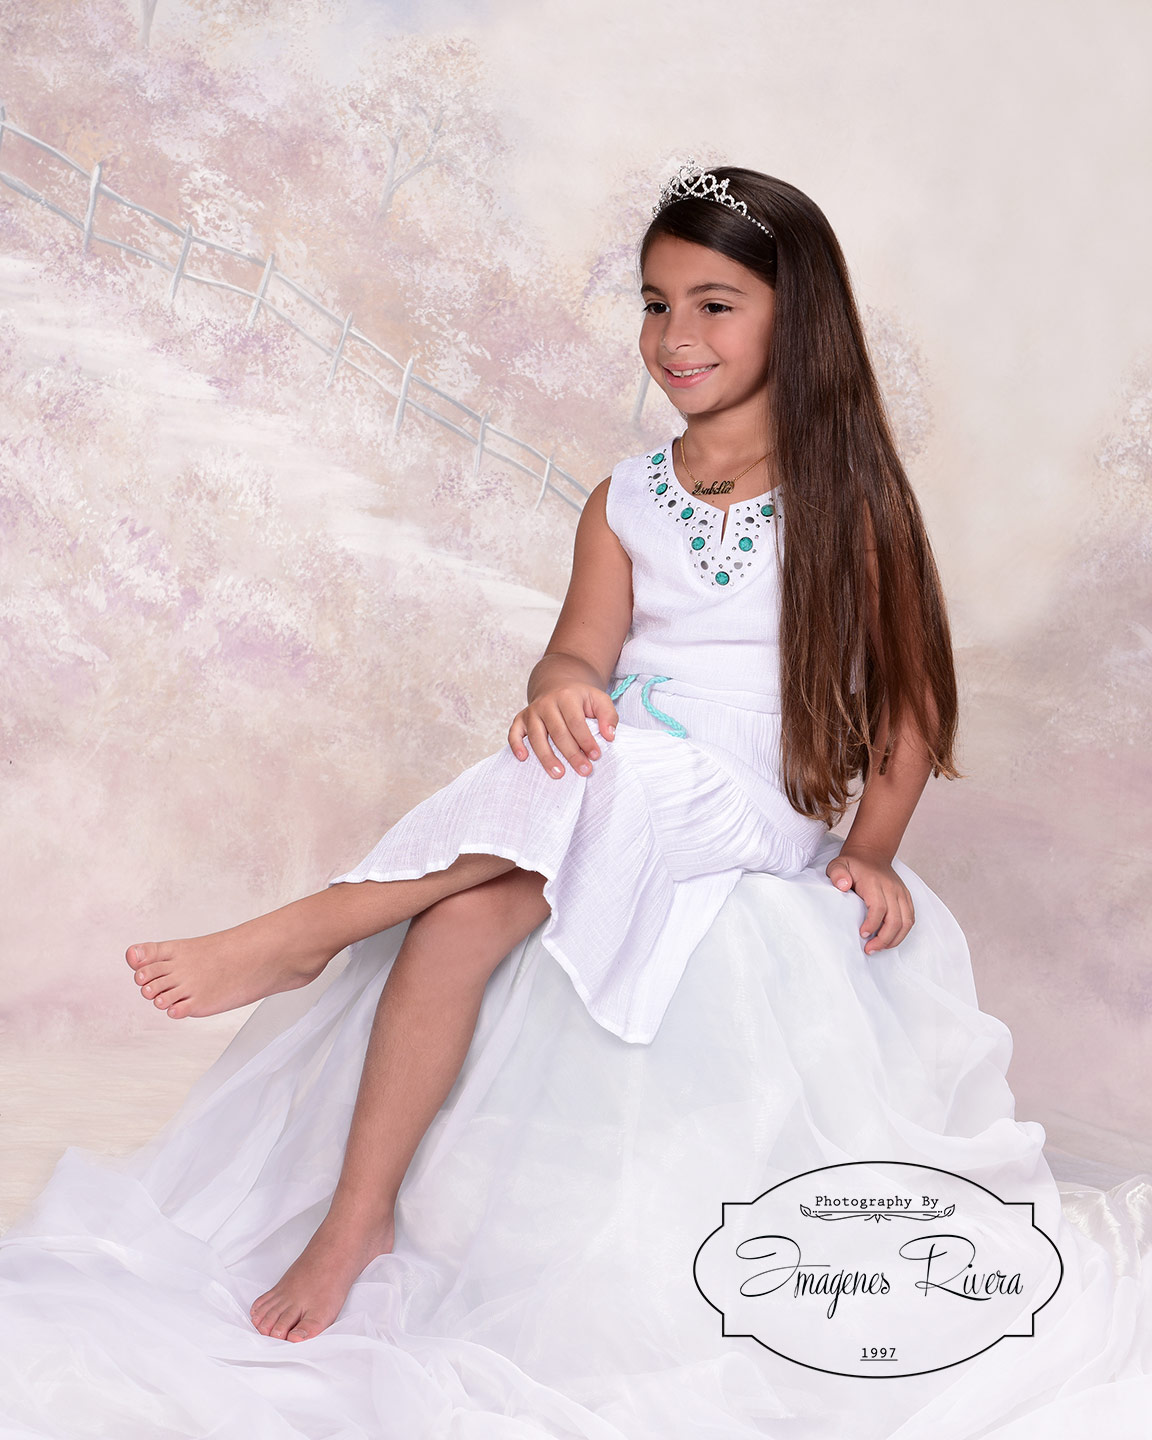 ♥ Creative Family Photography | Imagenes Rivera Miami ♥